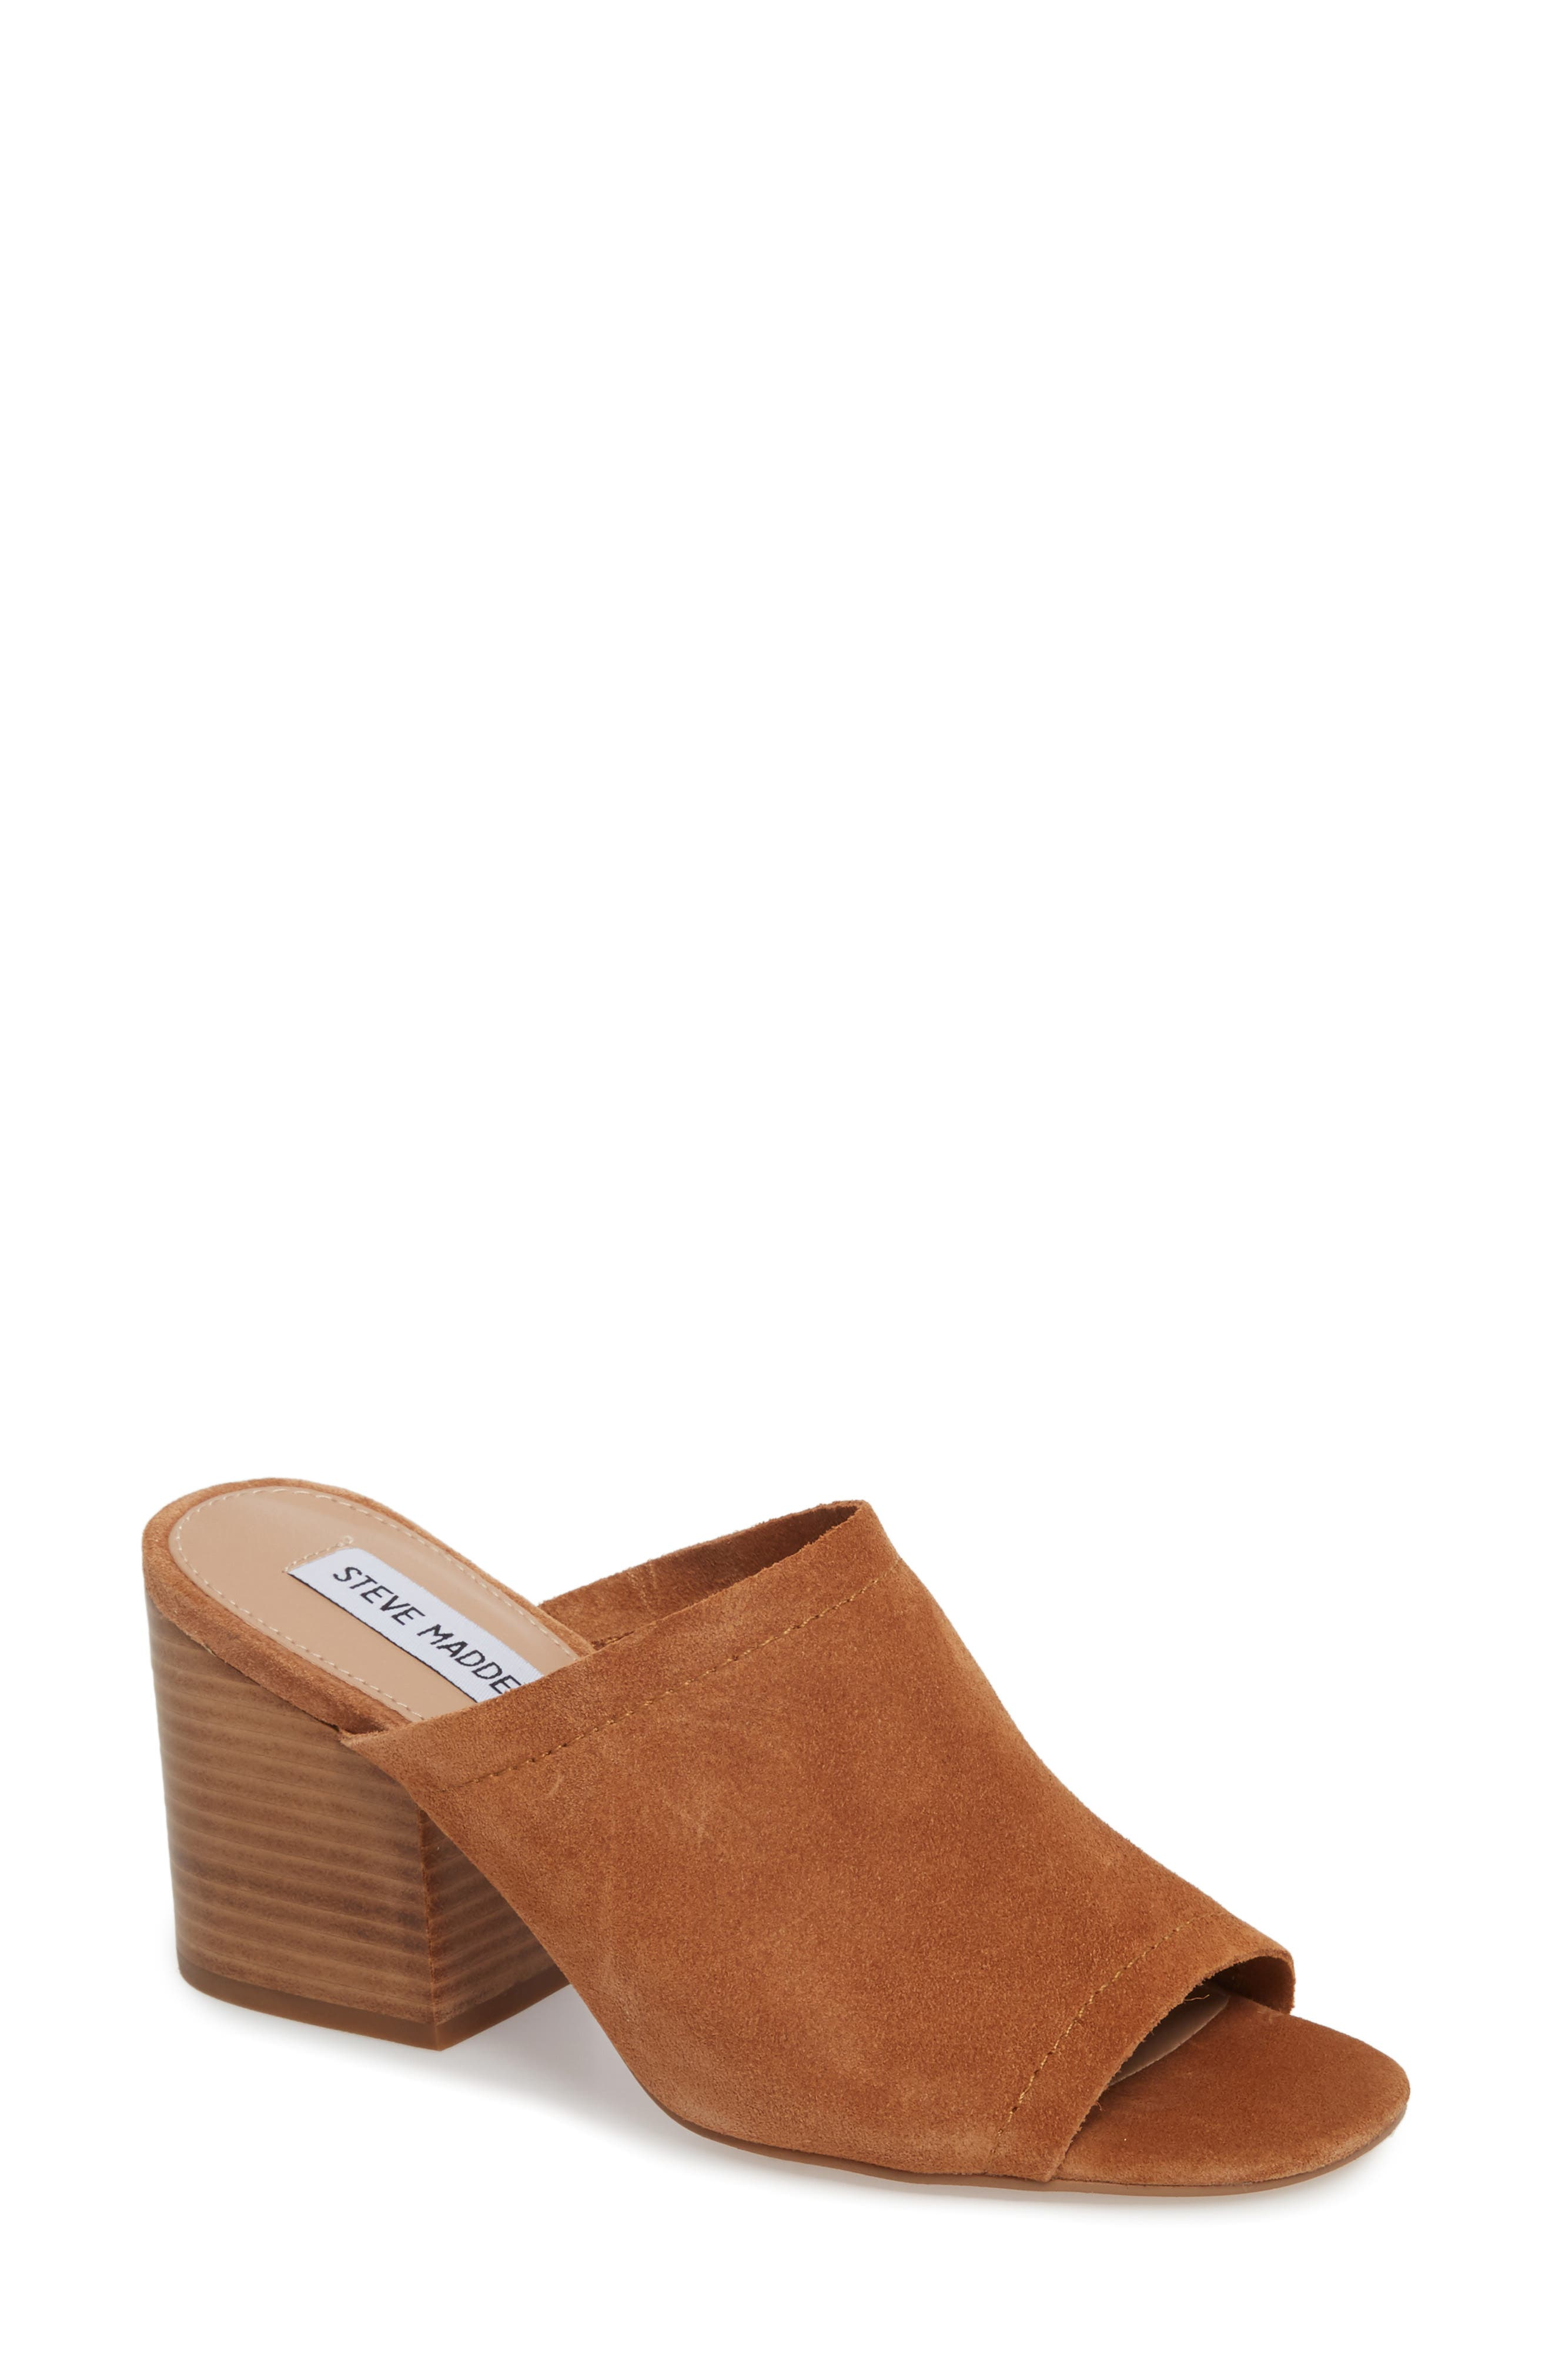 Doran Mule Sandal,                         Main,                         color, CHESTNUT SUEDE